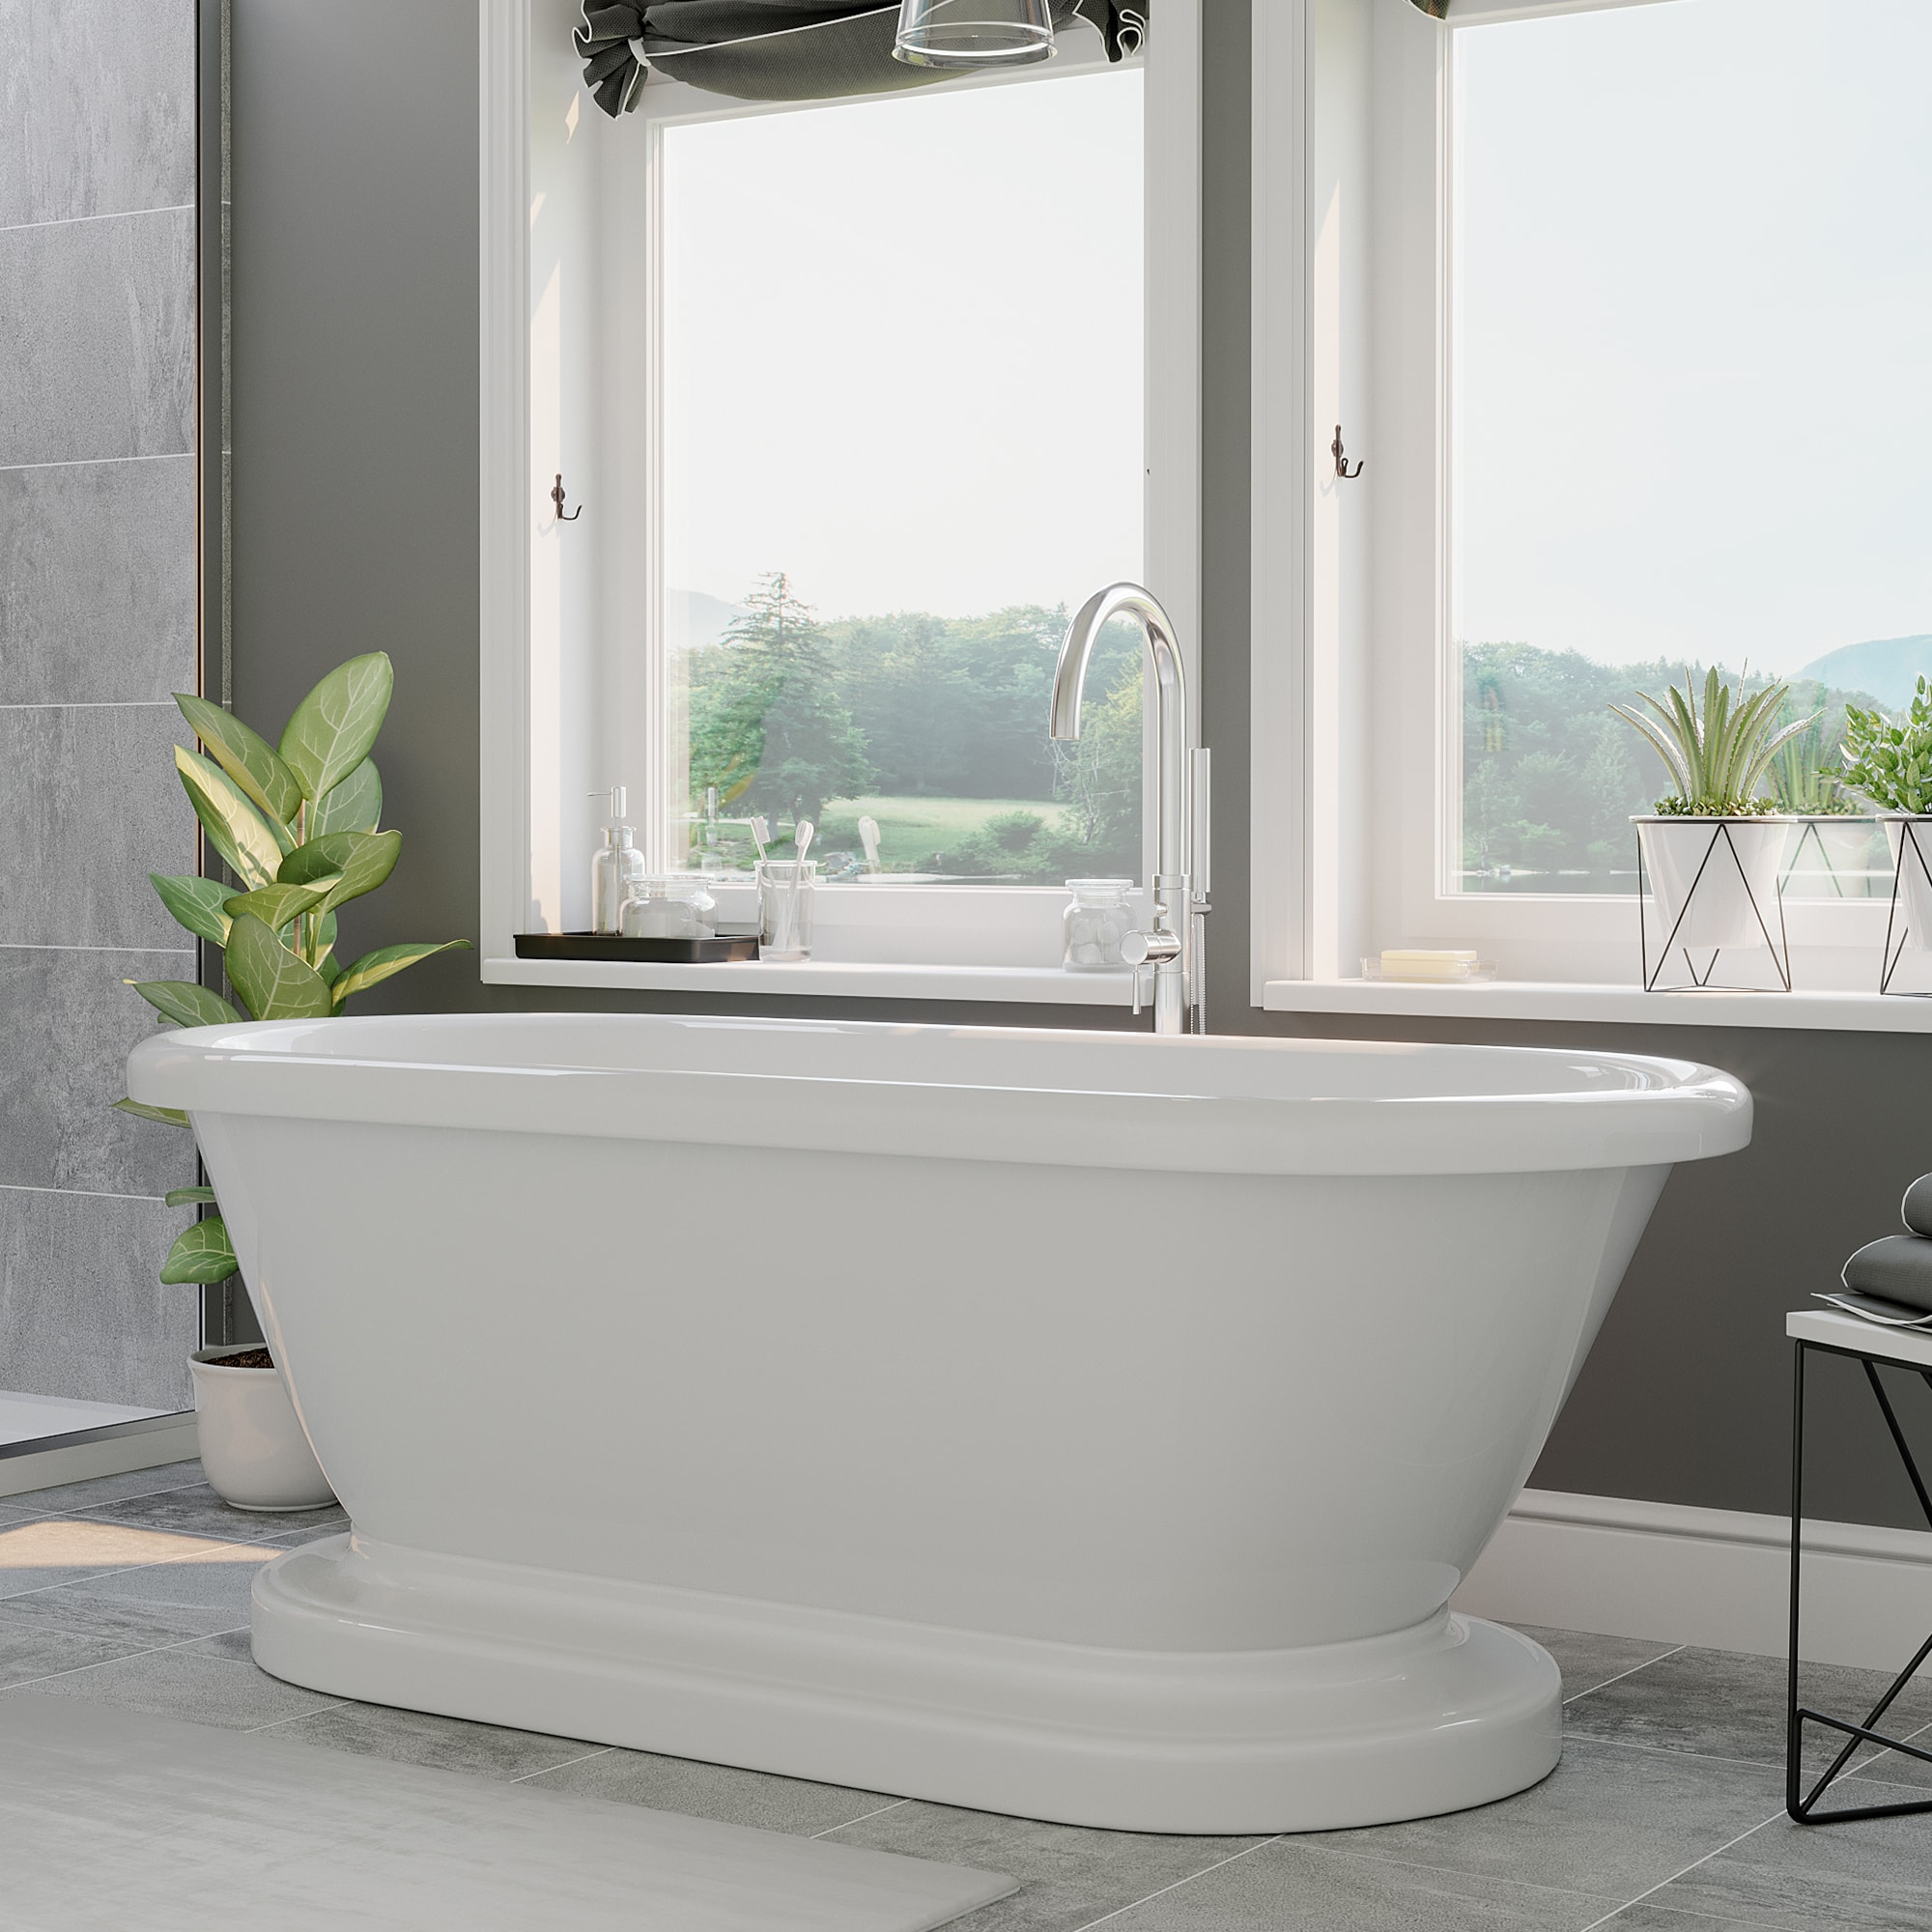 acrylic pedestal tub, double ended tub,